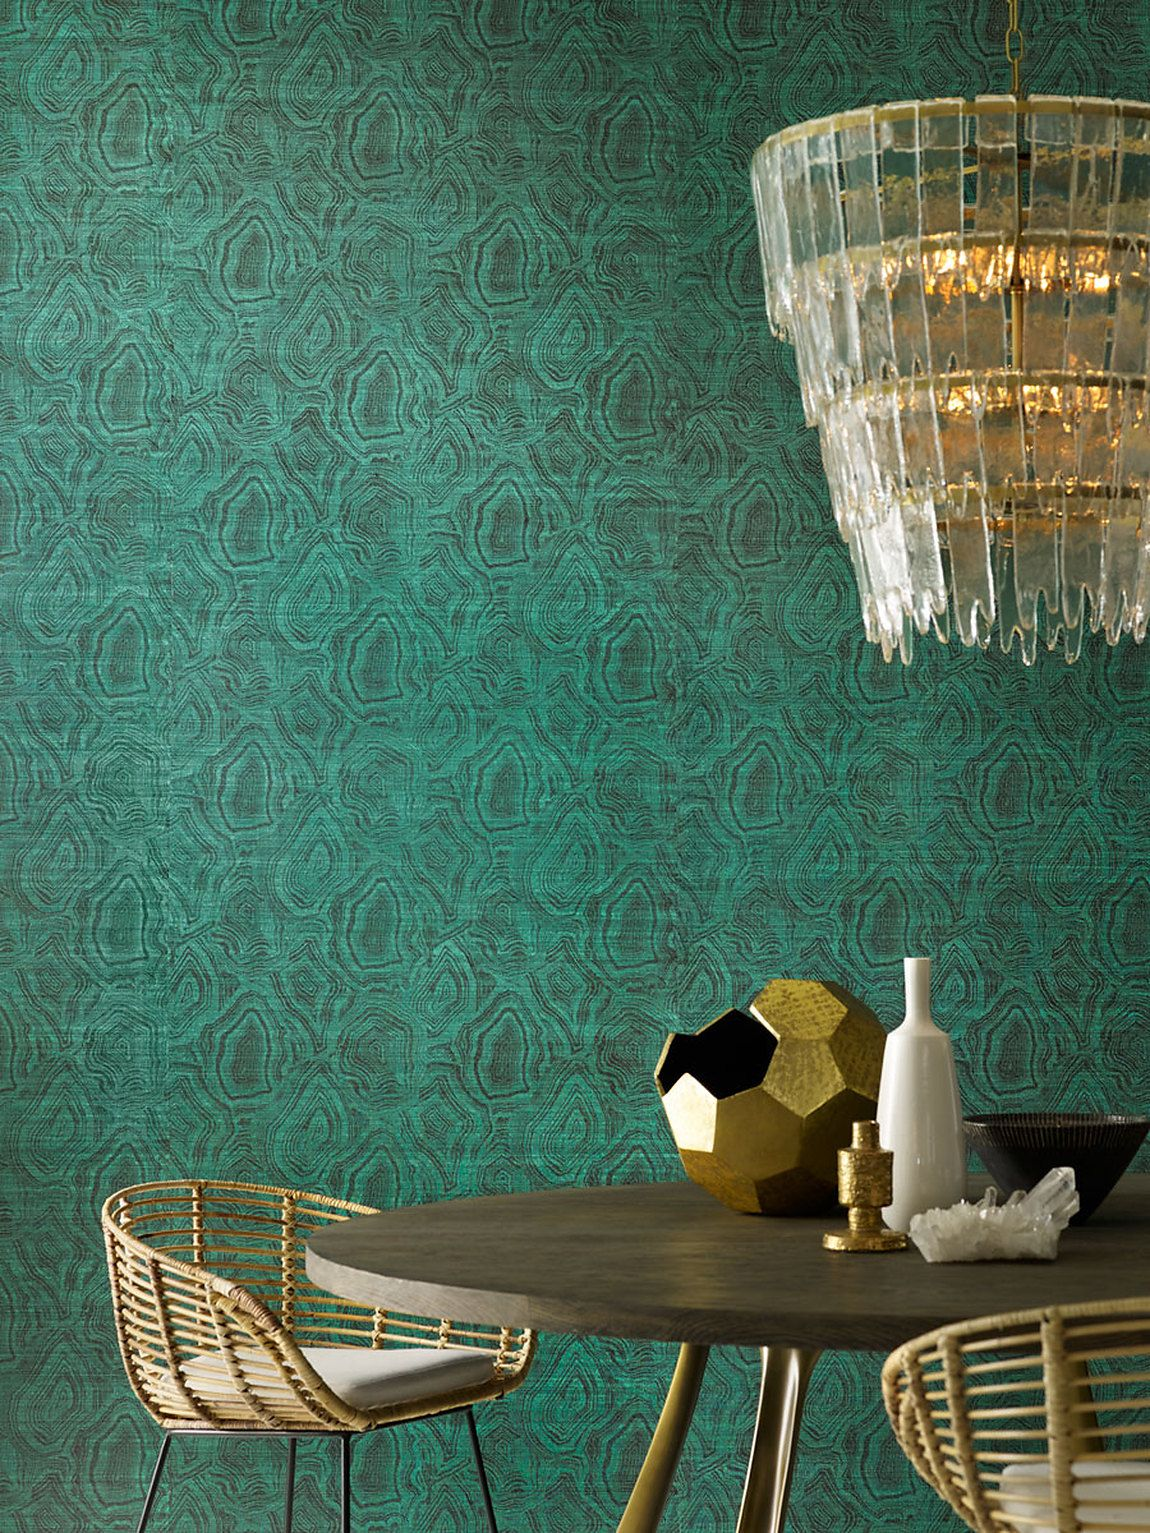 mahones wallpaper shop  Purchase 5937 Agate color name Malachite On Black Abaca from Phillip ...